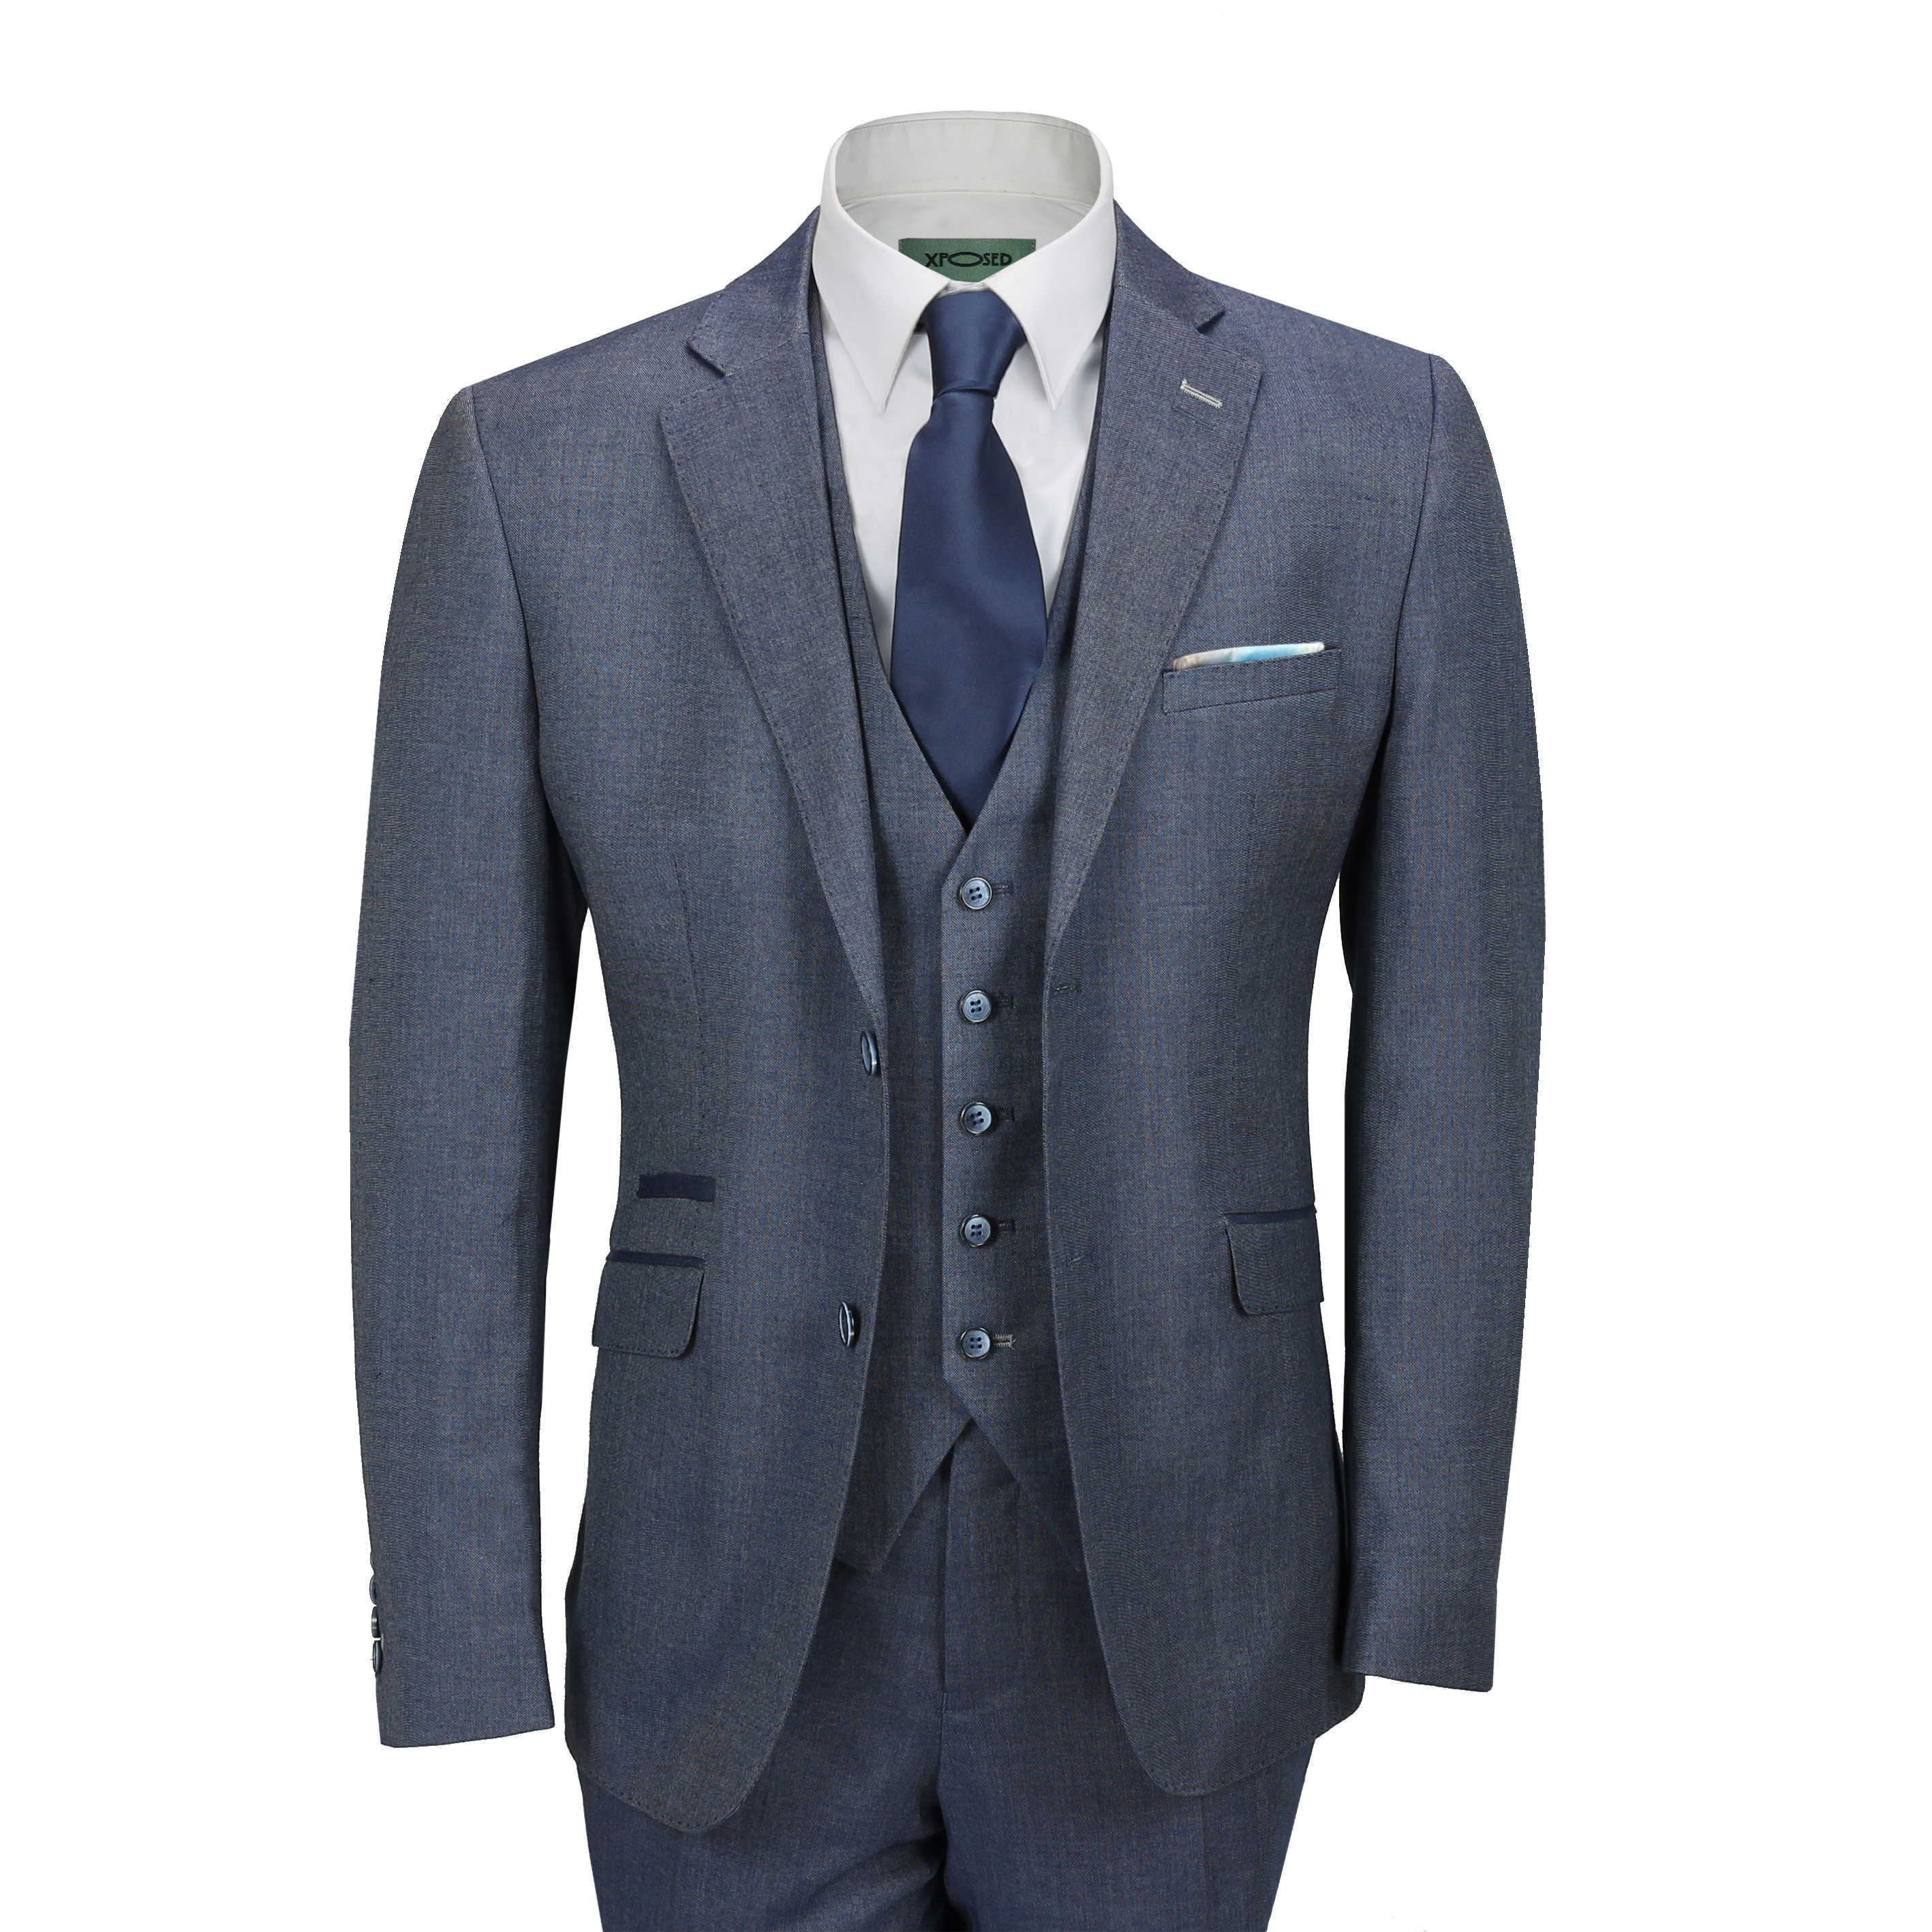 d3d7b62880 Mens Blue Grey Classic 3 Piece Suit Formal Work Smart Casual Tailored Fit  Jacket